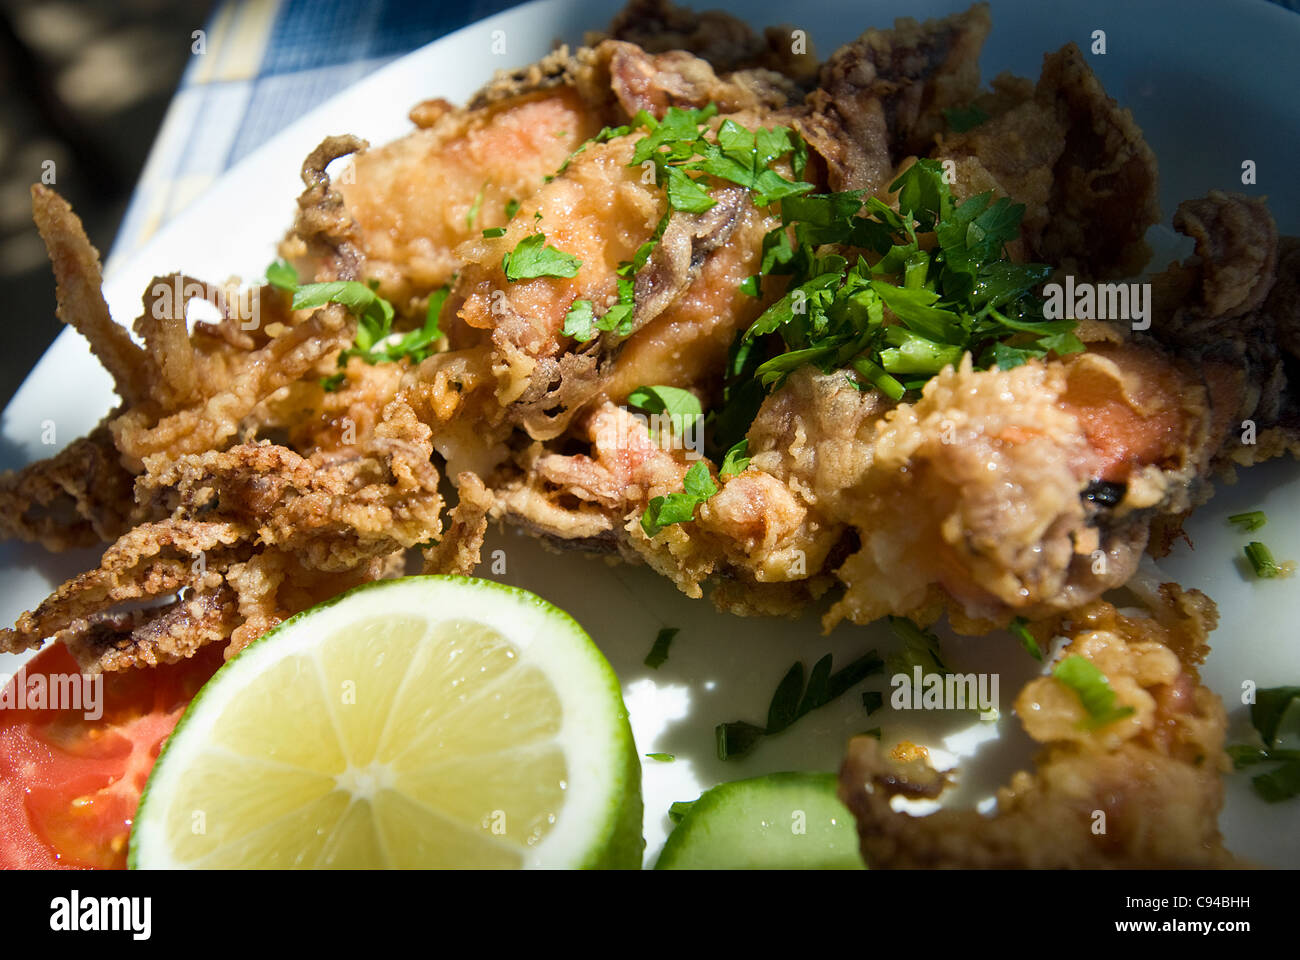 Fried Squid Local Food Cyprus - Stock Image